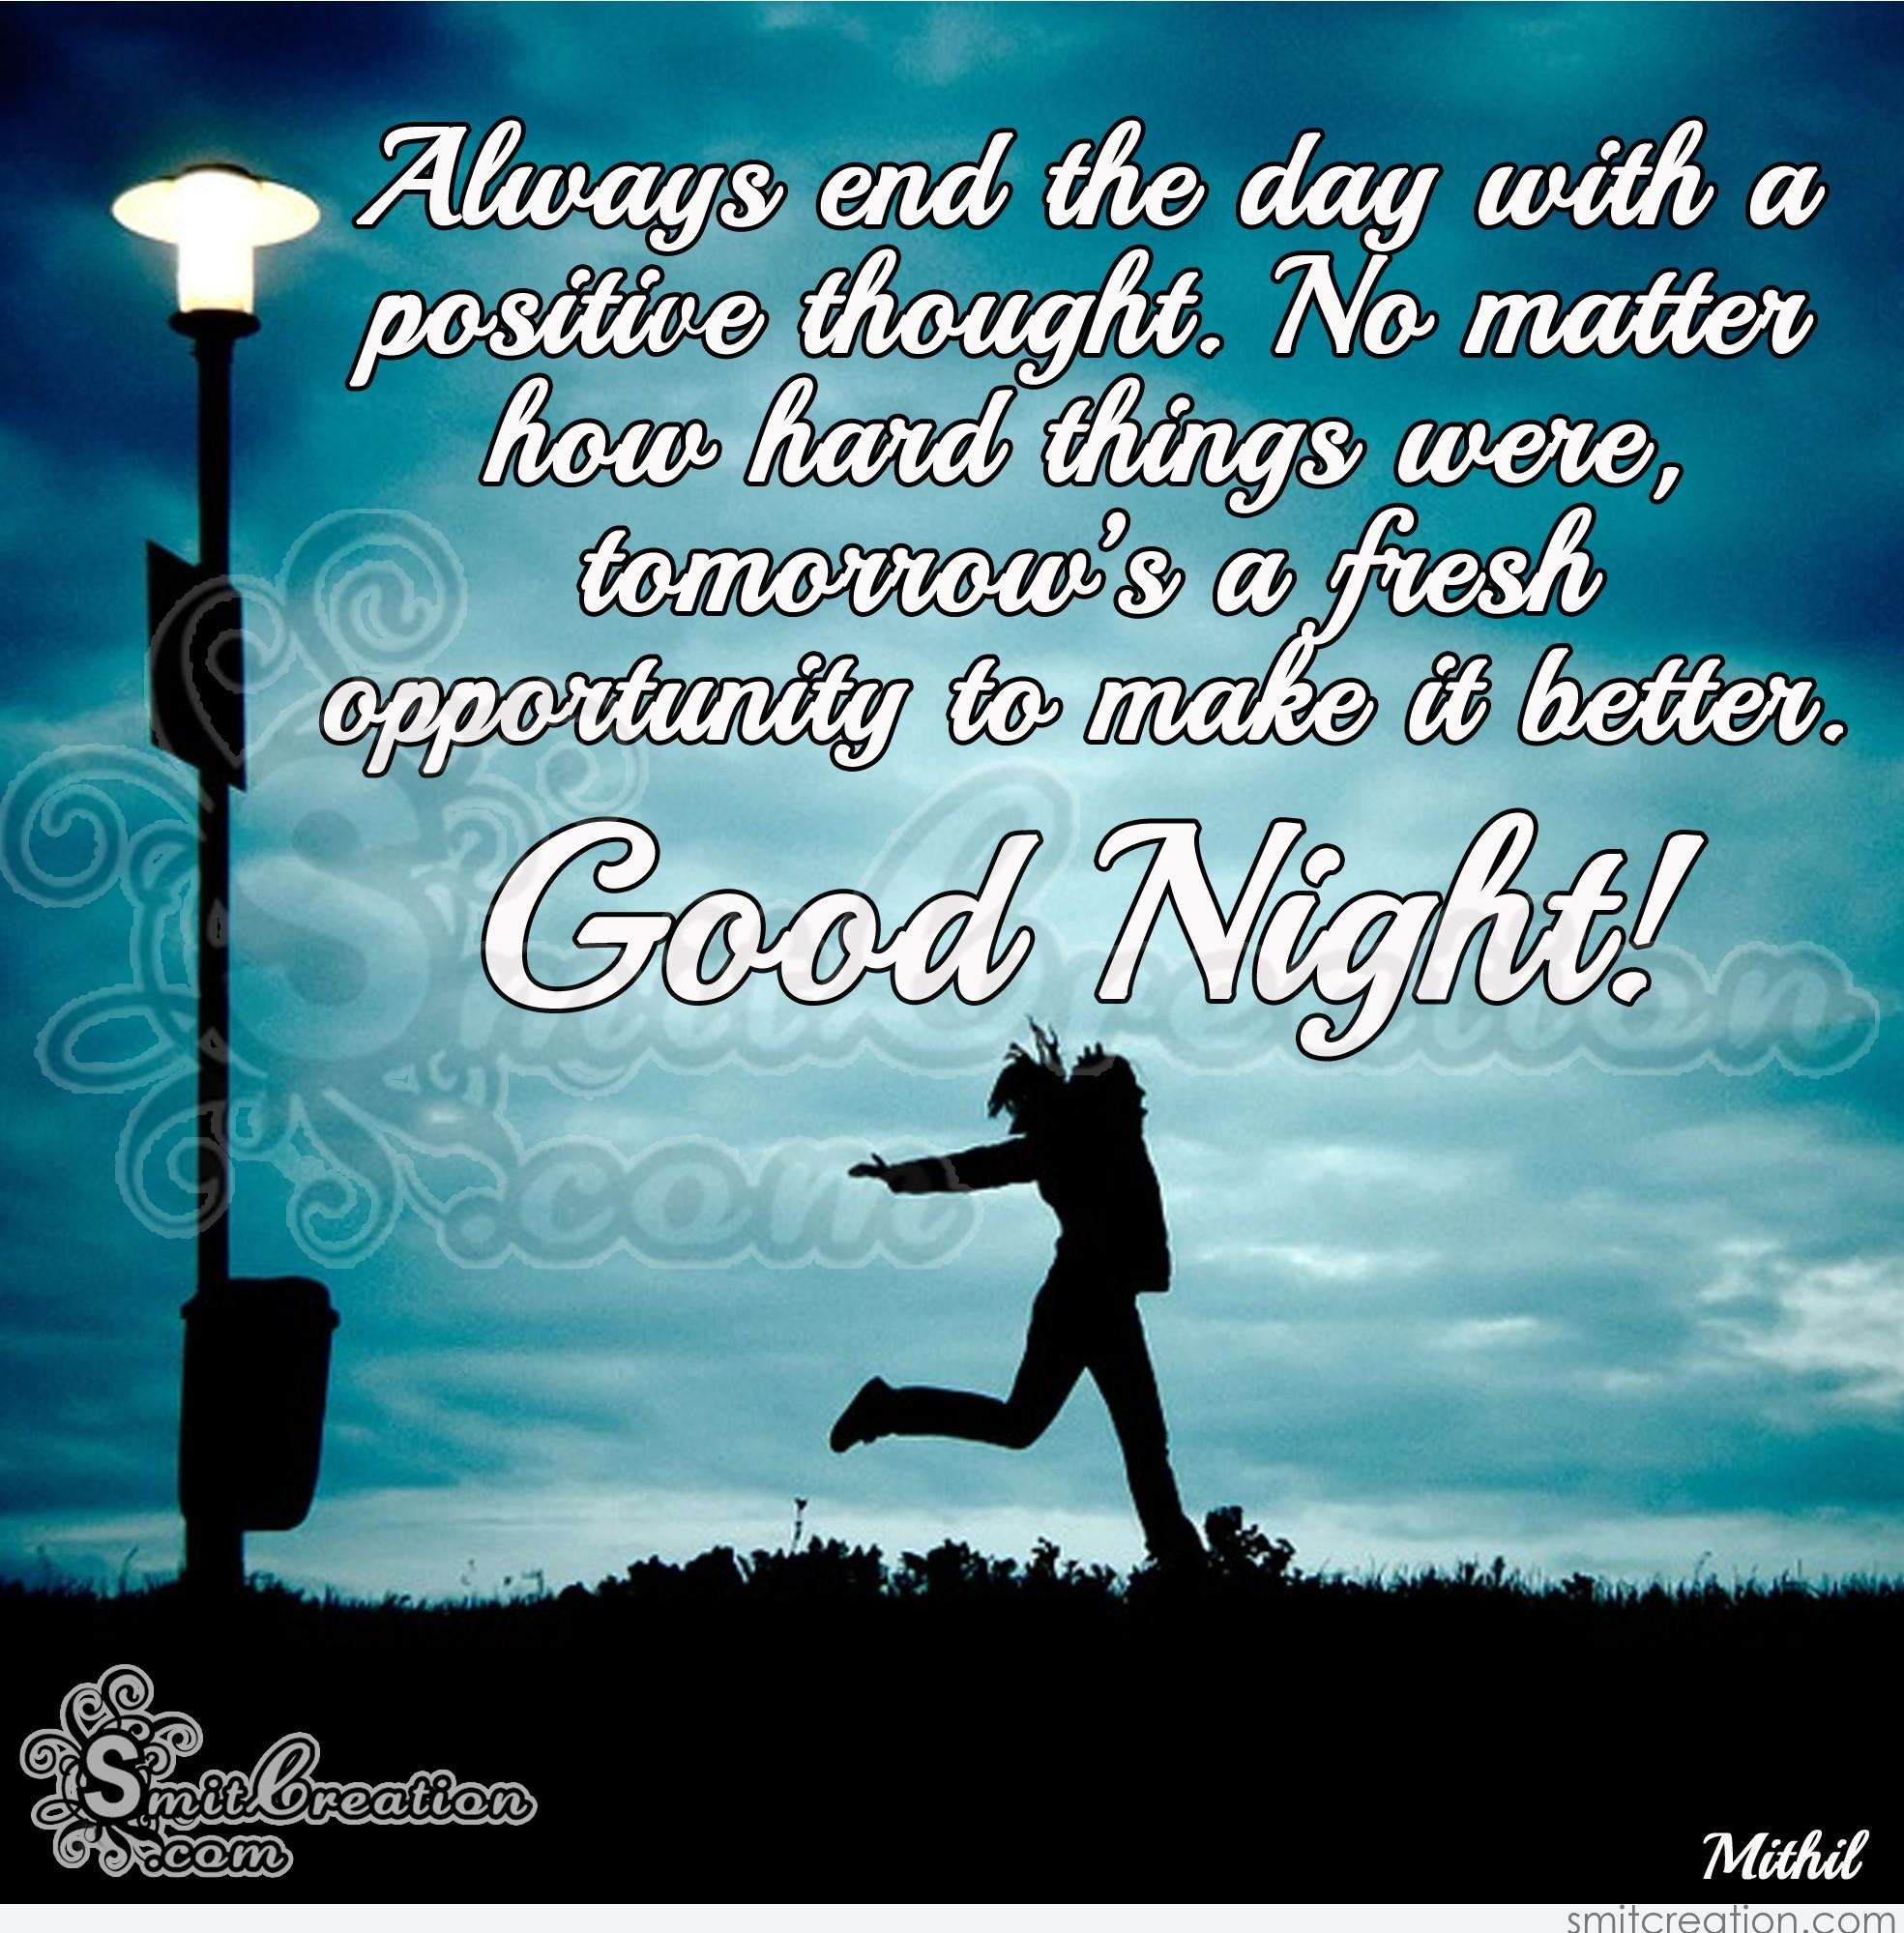 Thought Of The Day Motivational Good Night Inspirational Quotes Pictures And Graphics